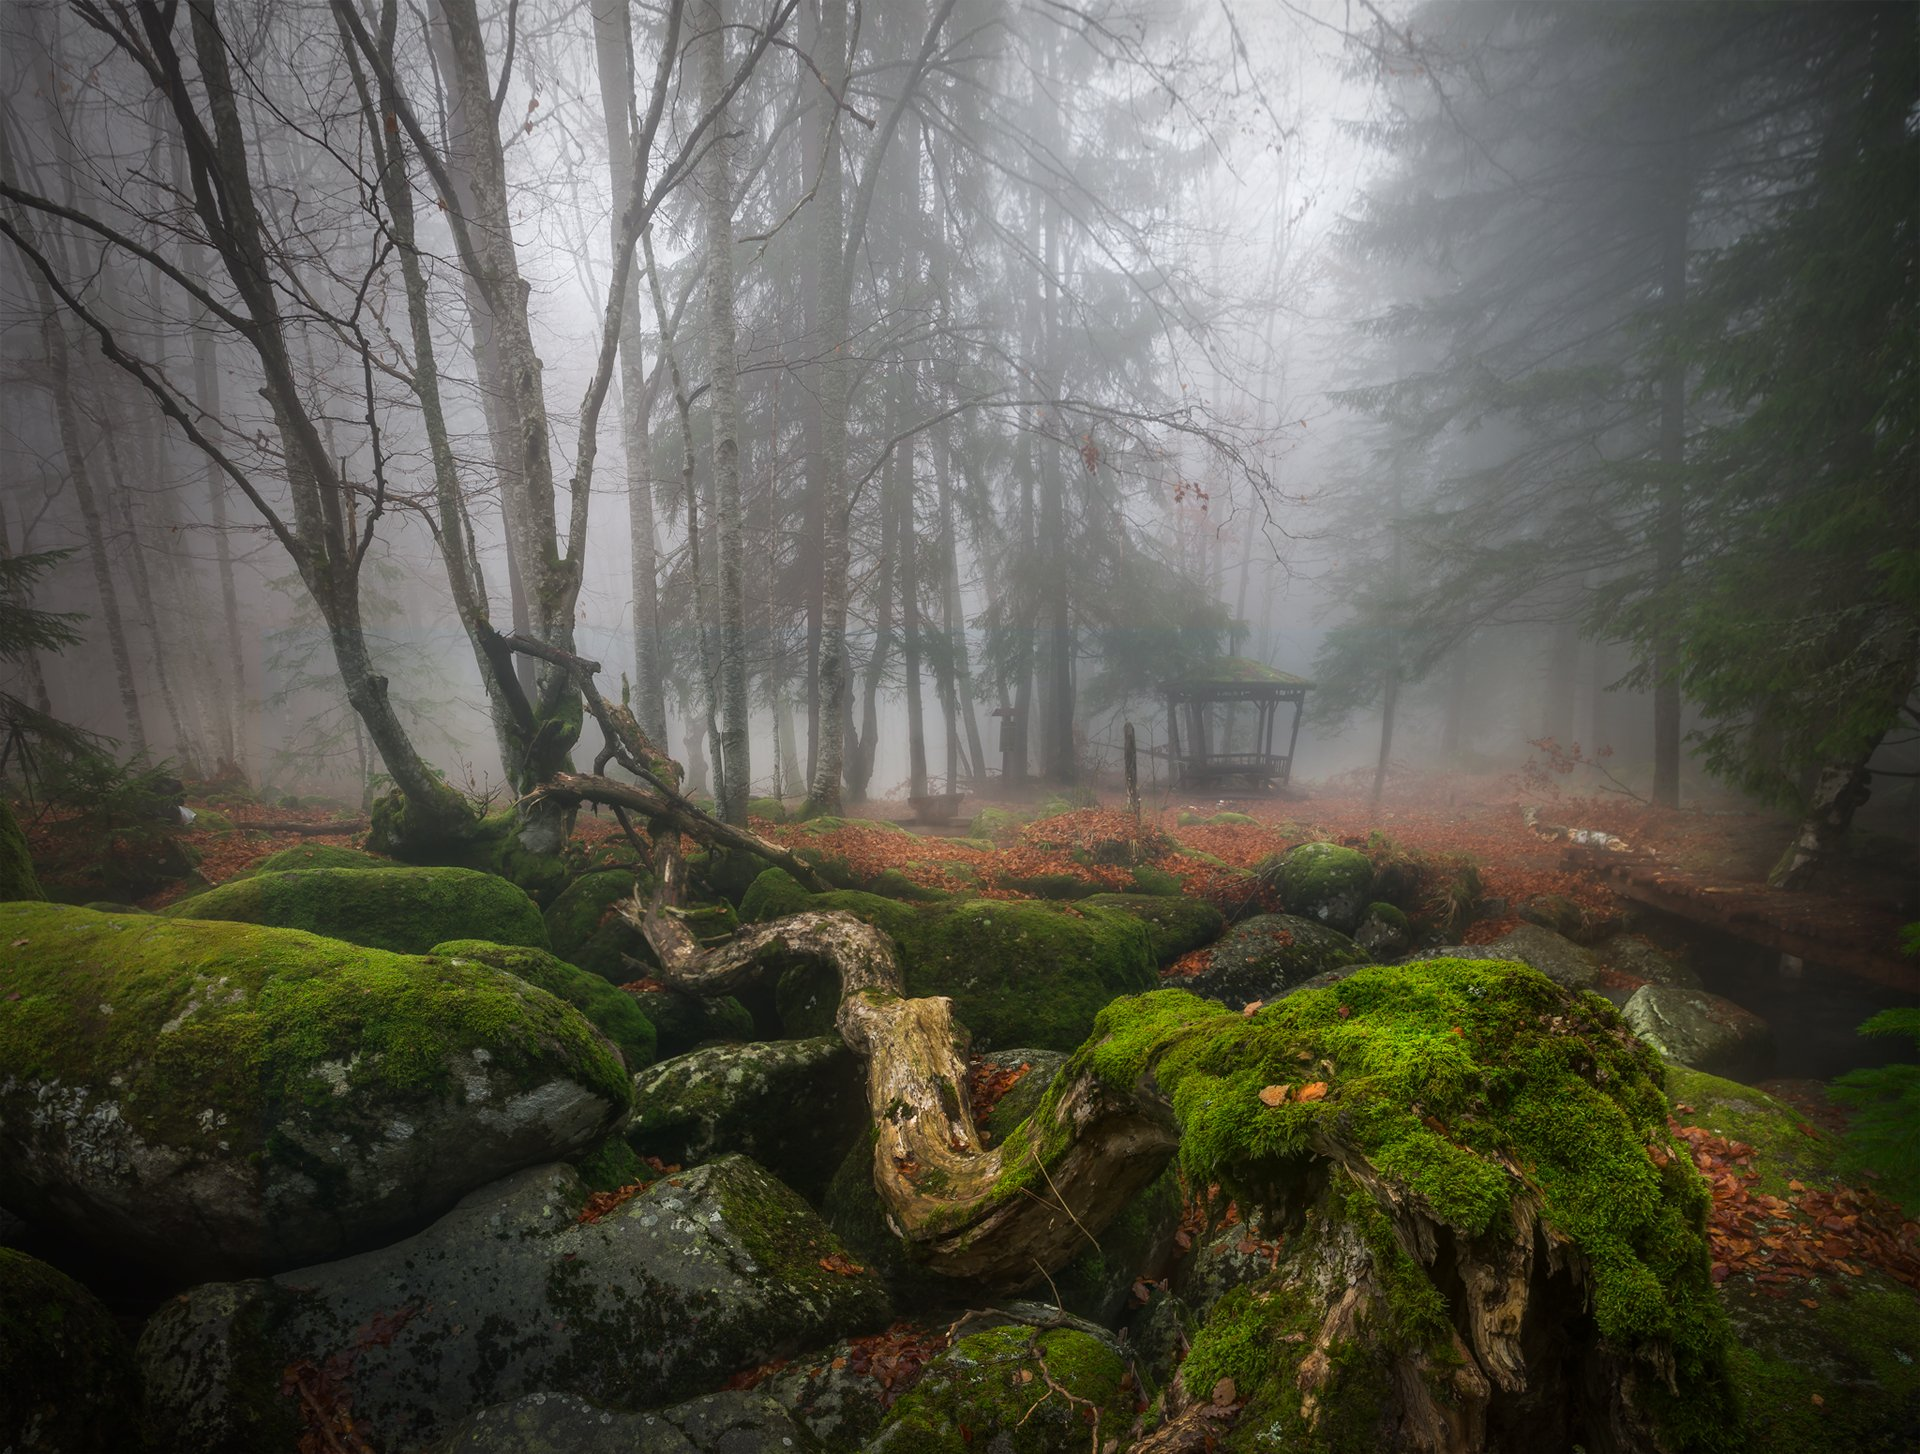 landscape nature scenery forest wood autumn mist misty fog foggy river longexposure mountain rocks vitosha bulgaria туман лес oсень, Александър Александров